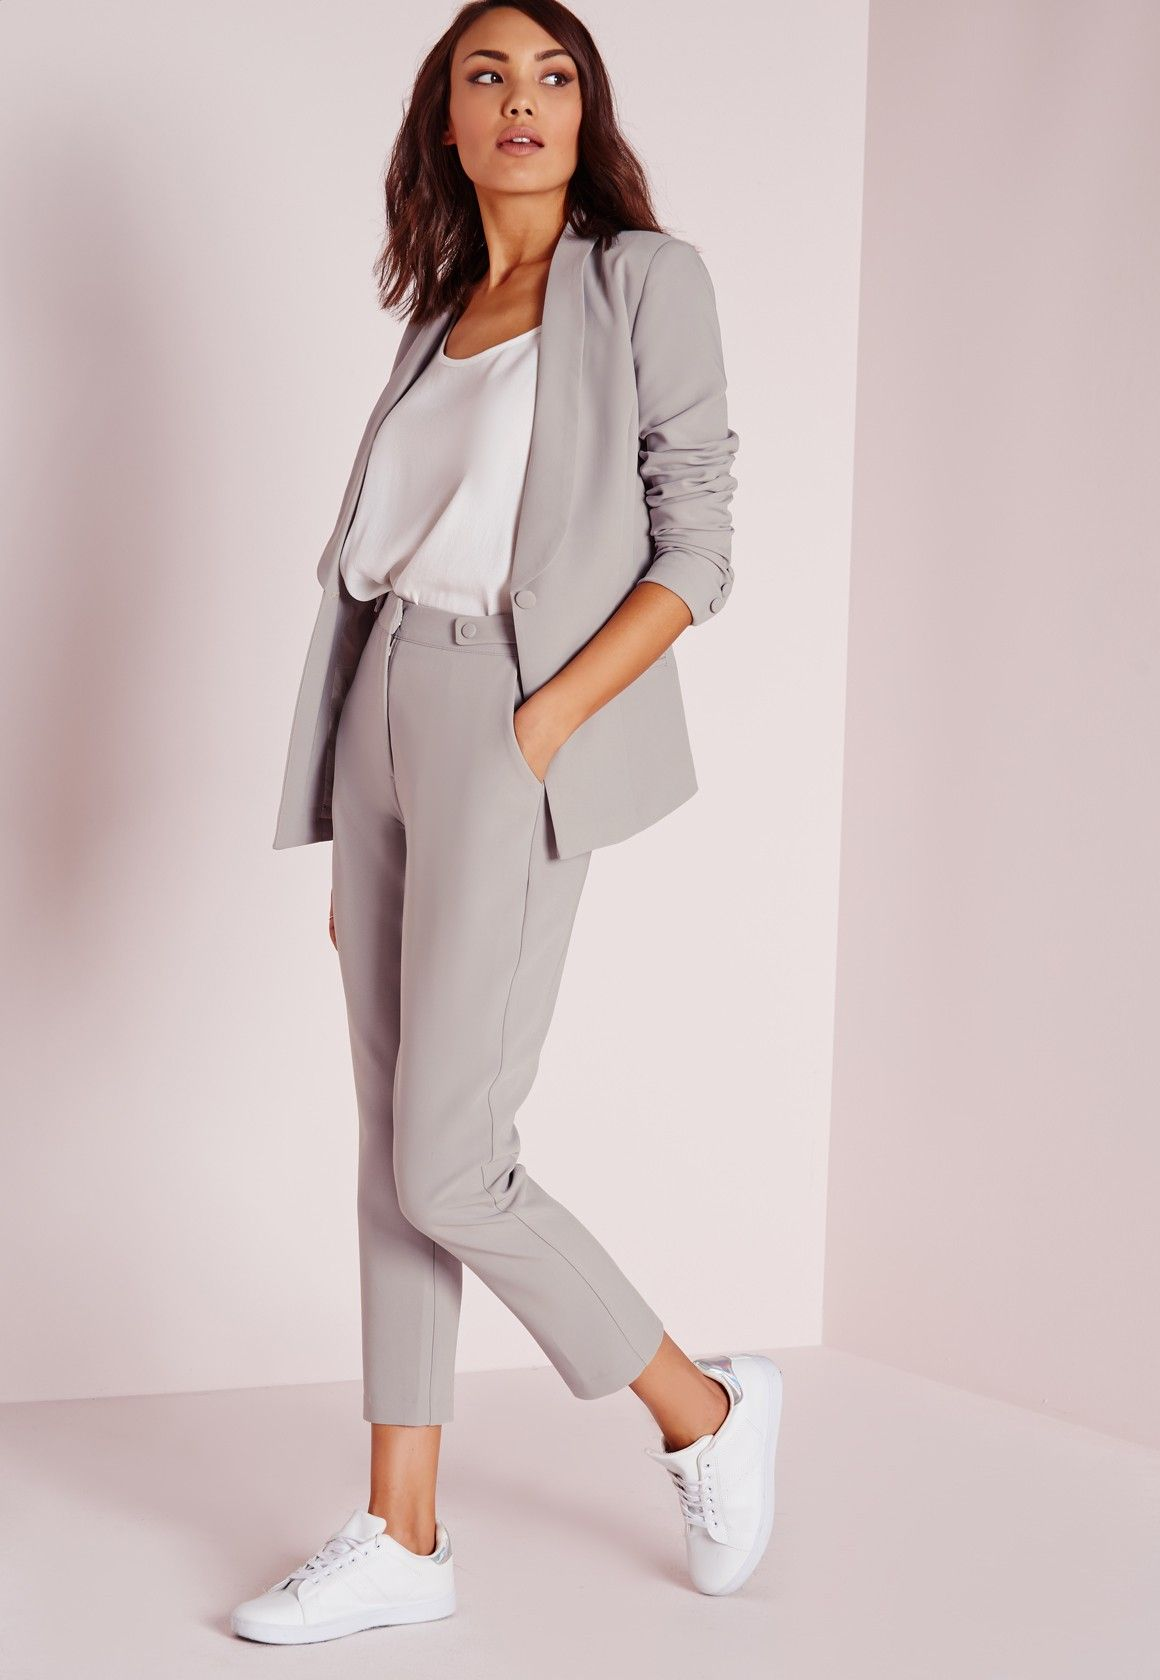 Missguided - Button Detail Suit Cigarette Trousers Grey | Cool ...